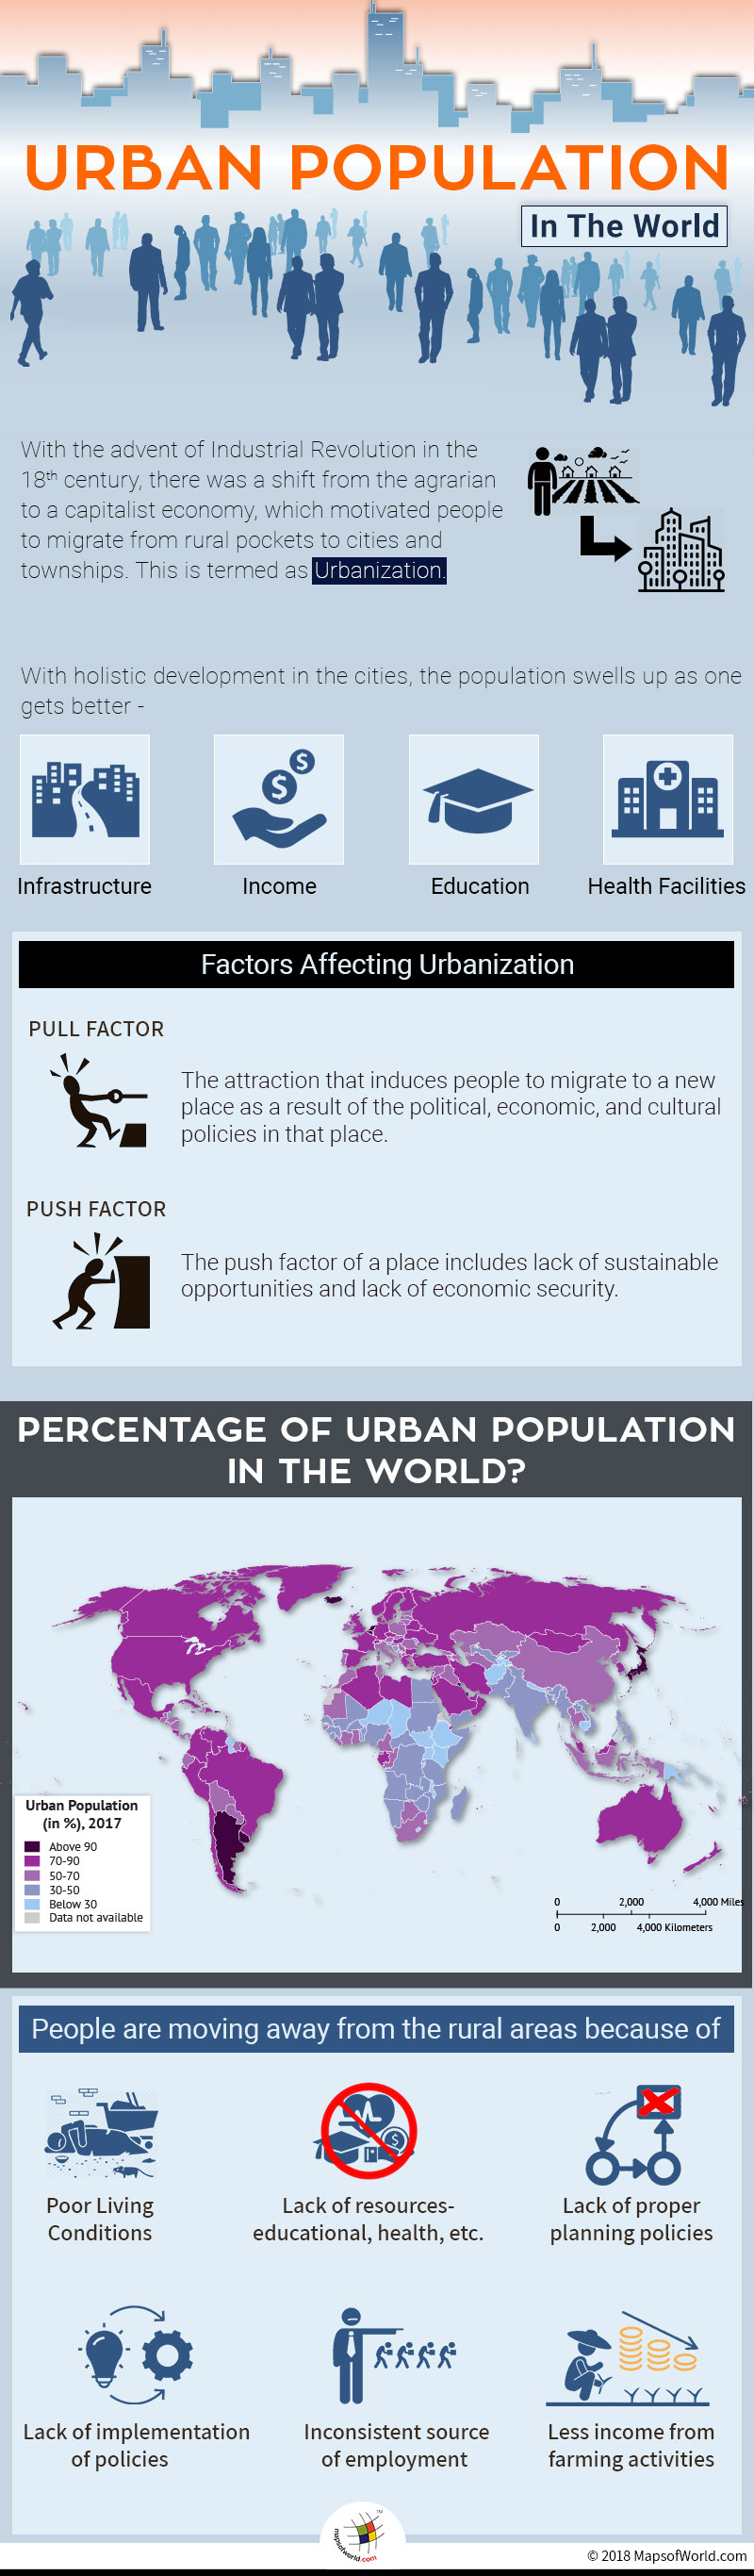 Infographic elaborating Global Urban Population